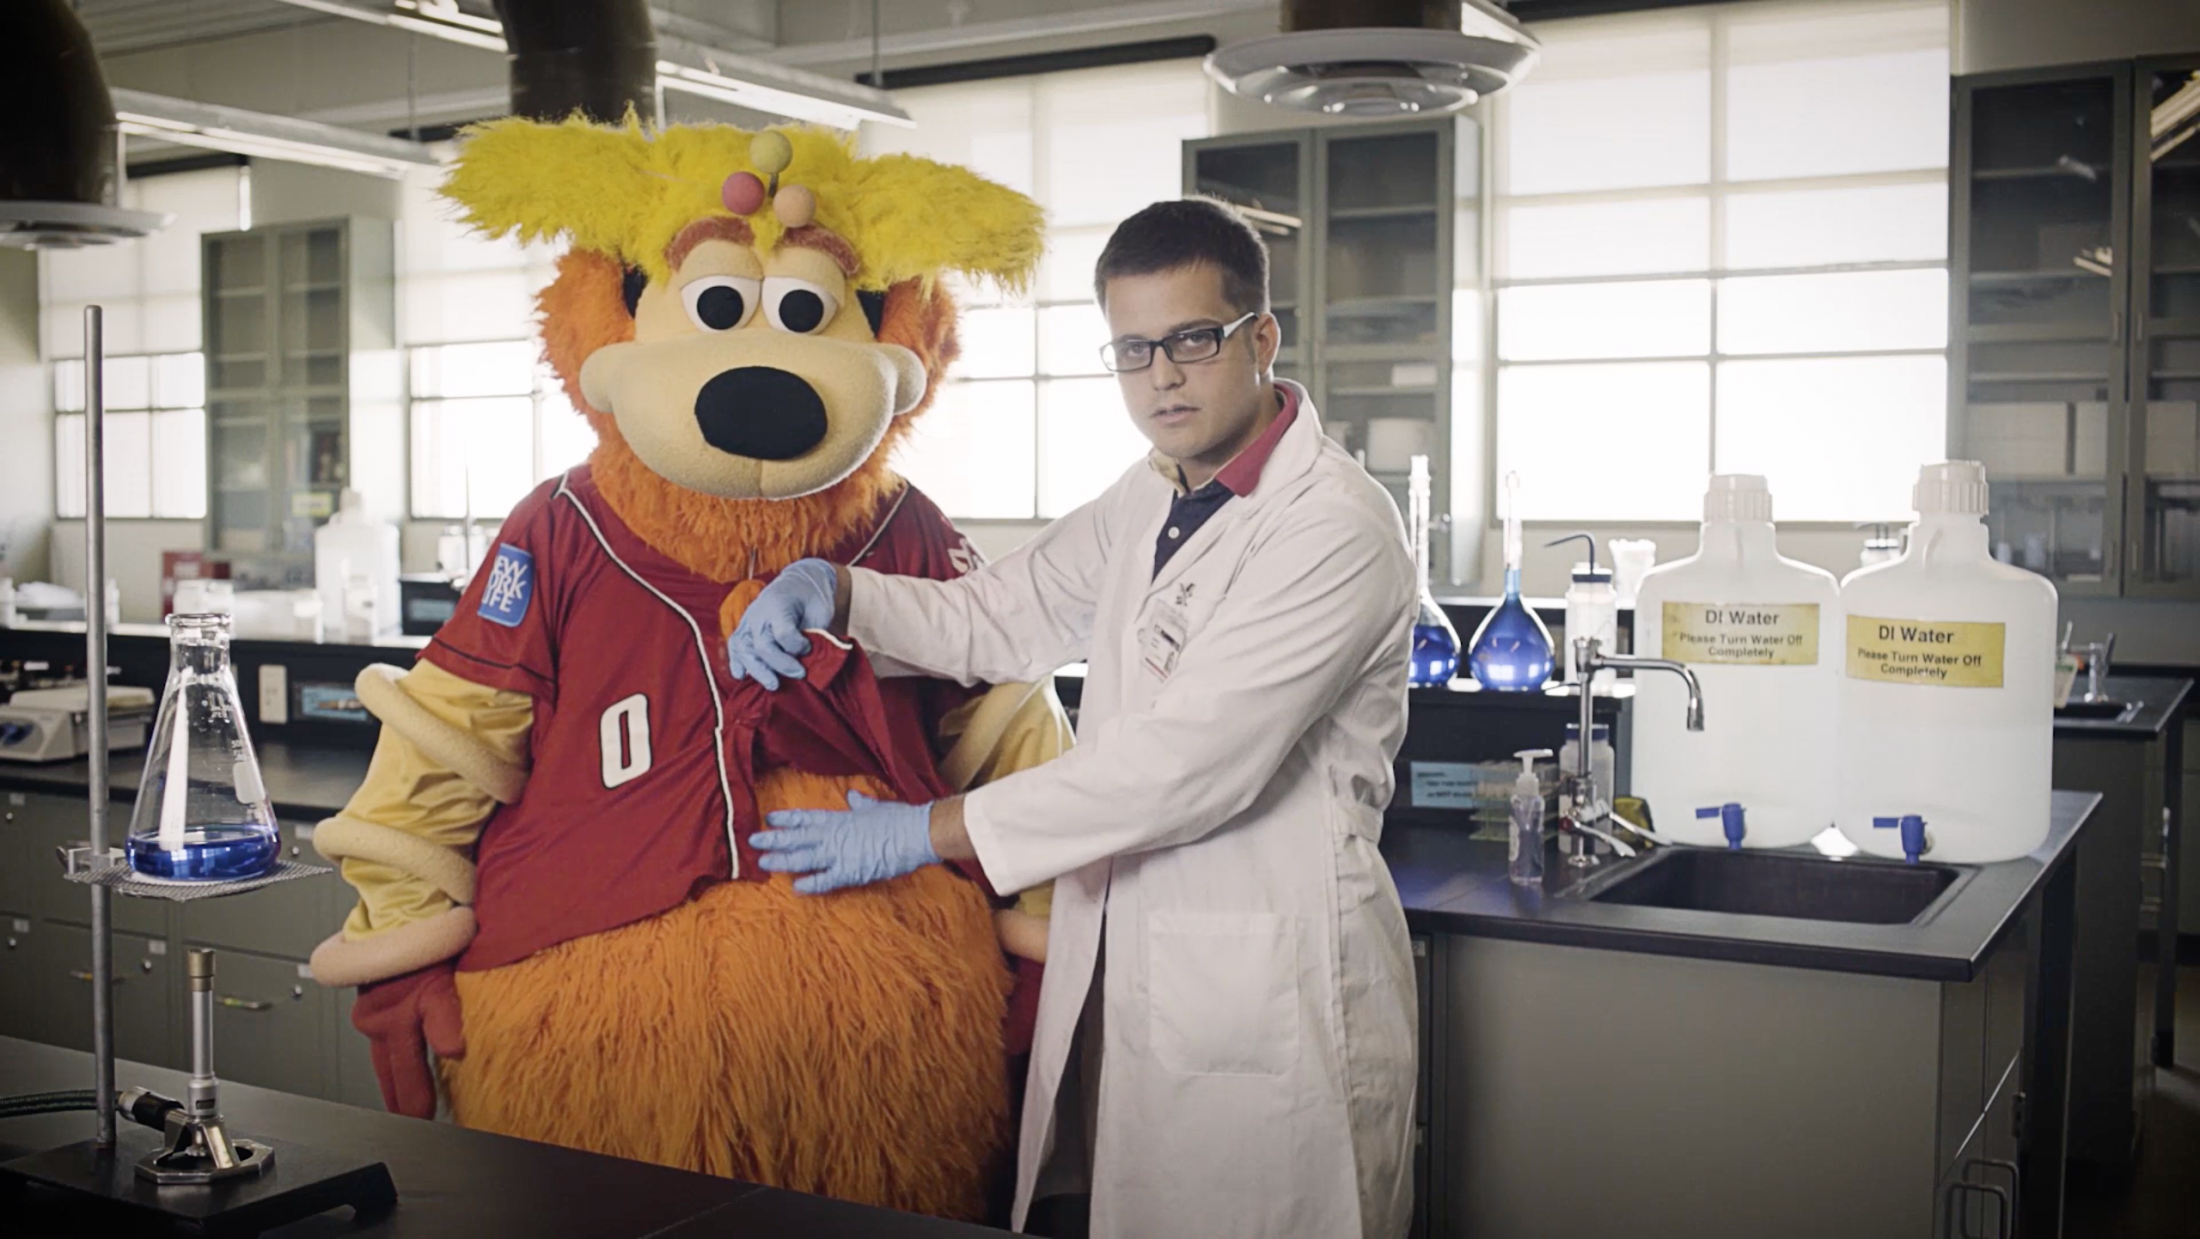 Image Media for MINOR LEAGUE MASCOTS, MAJOR LEAGUE FUNK | ORBIT